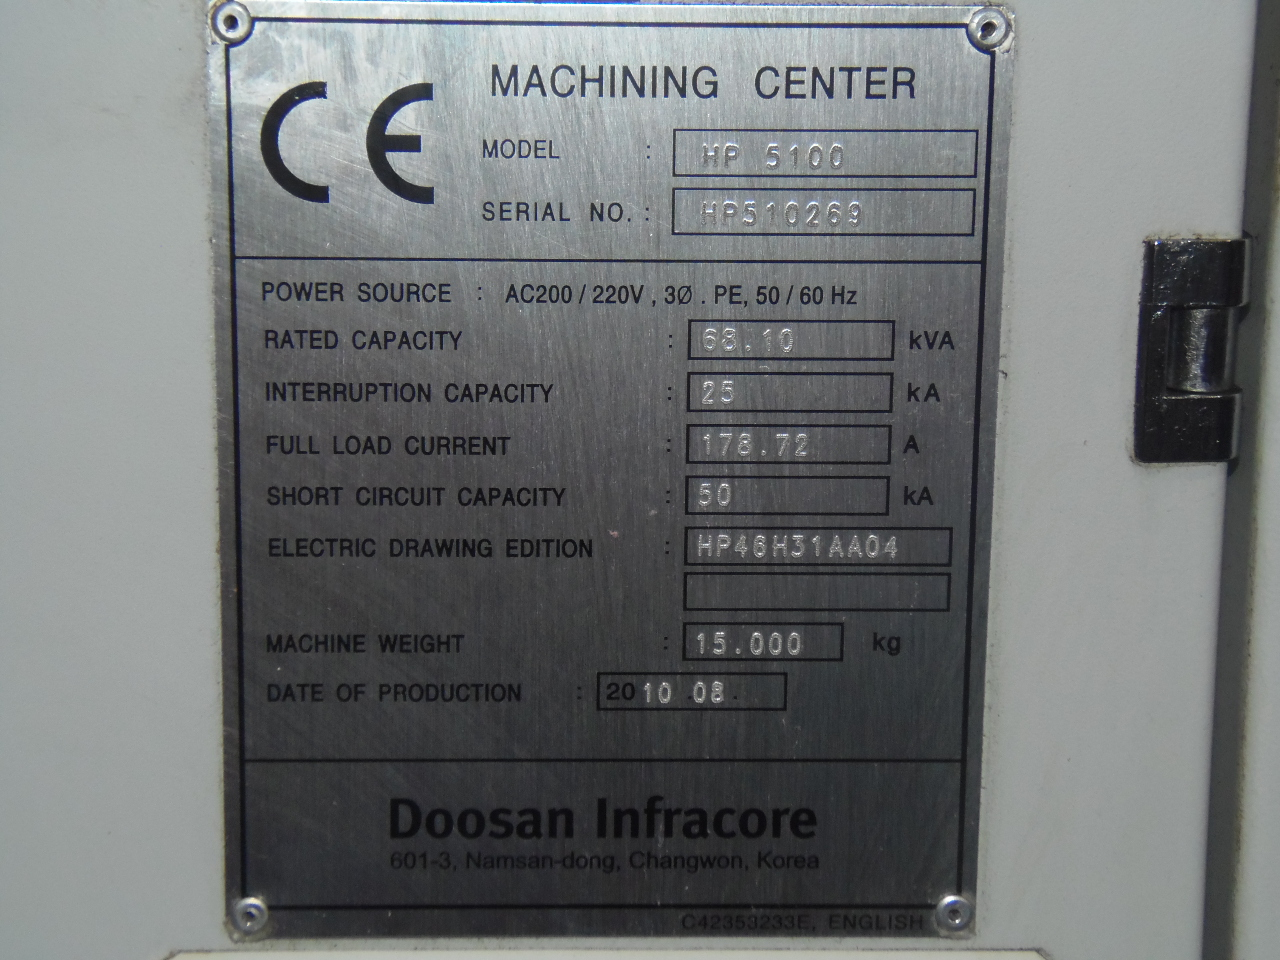 "DOOSAN HP-5100, 33.5 X 27.6 X 29.5 TRAVELS, 2-19.7"" PALLETS, FANUC 31i, TSC, CHIP, 60 ATC, CAT 40, 12,000 RPM, 2362 RAPIDS,  2010"